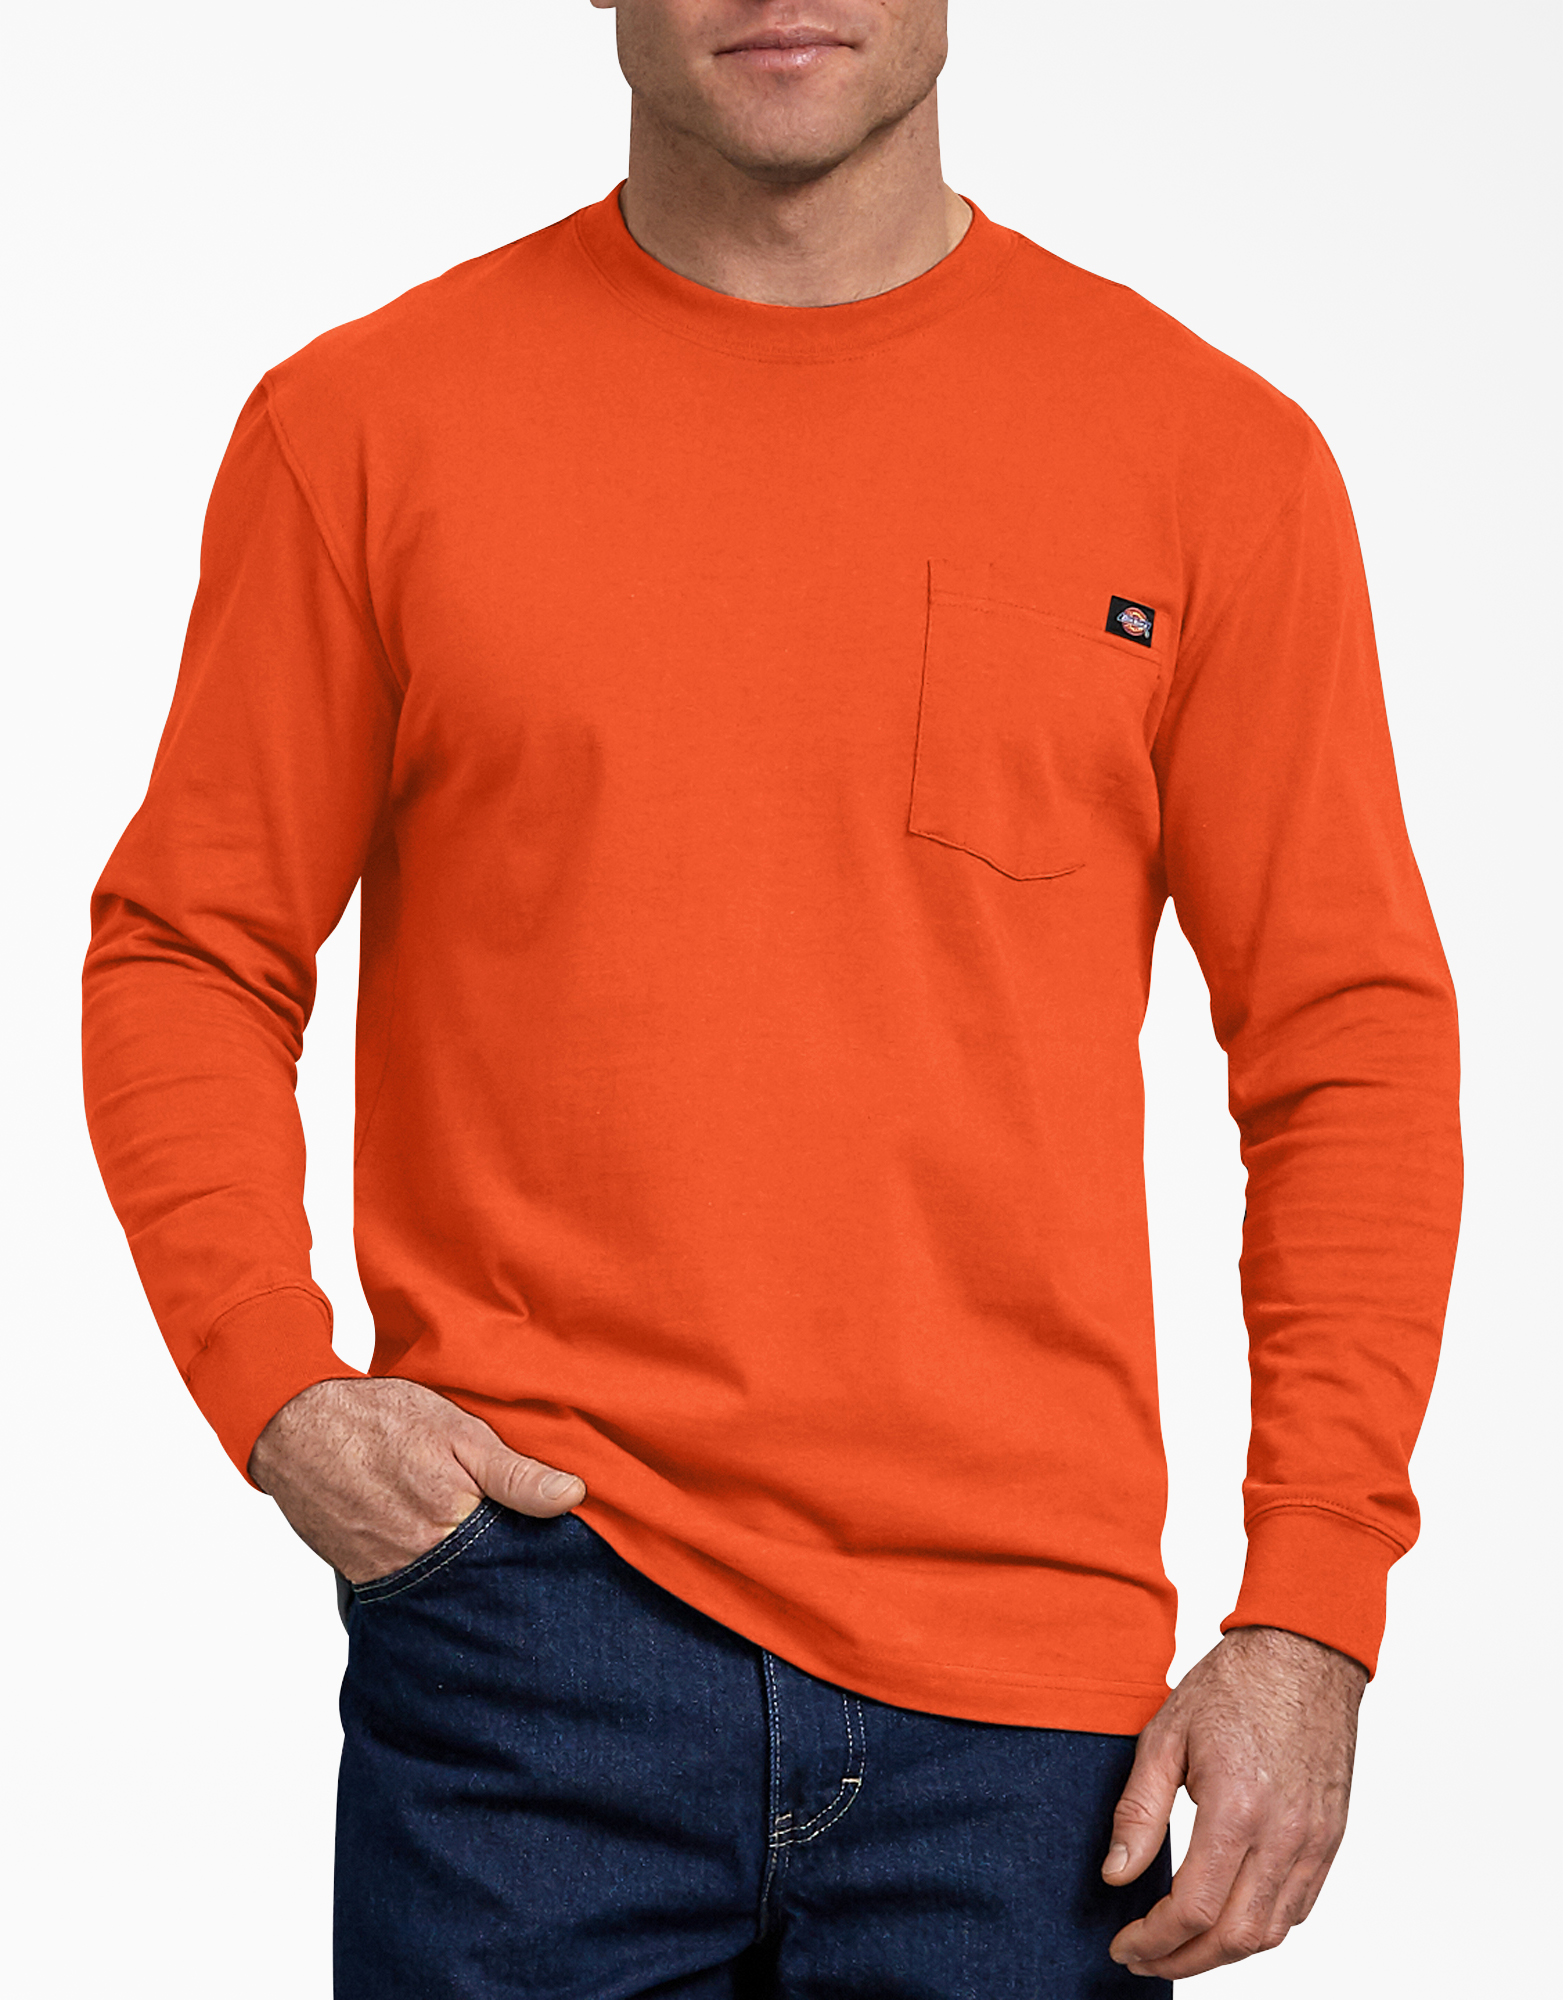 Long Sleeve Heavyweight Crew Neck T-Shirt - Orange (OR)